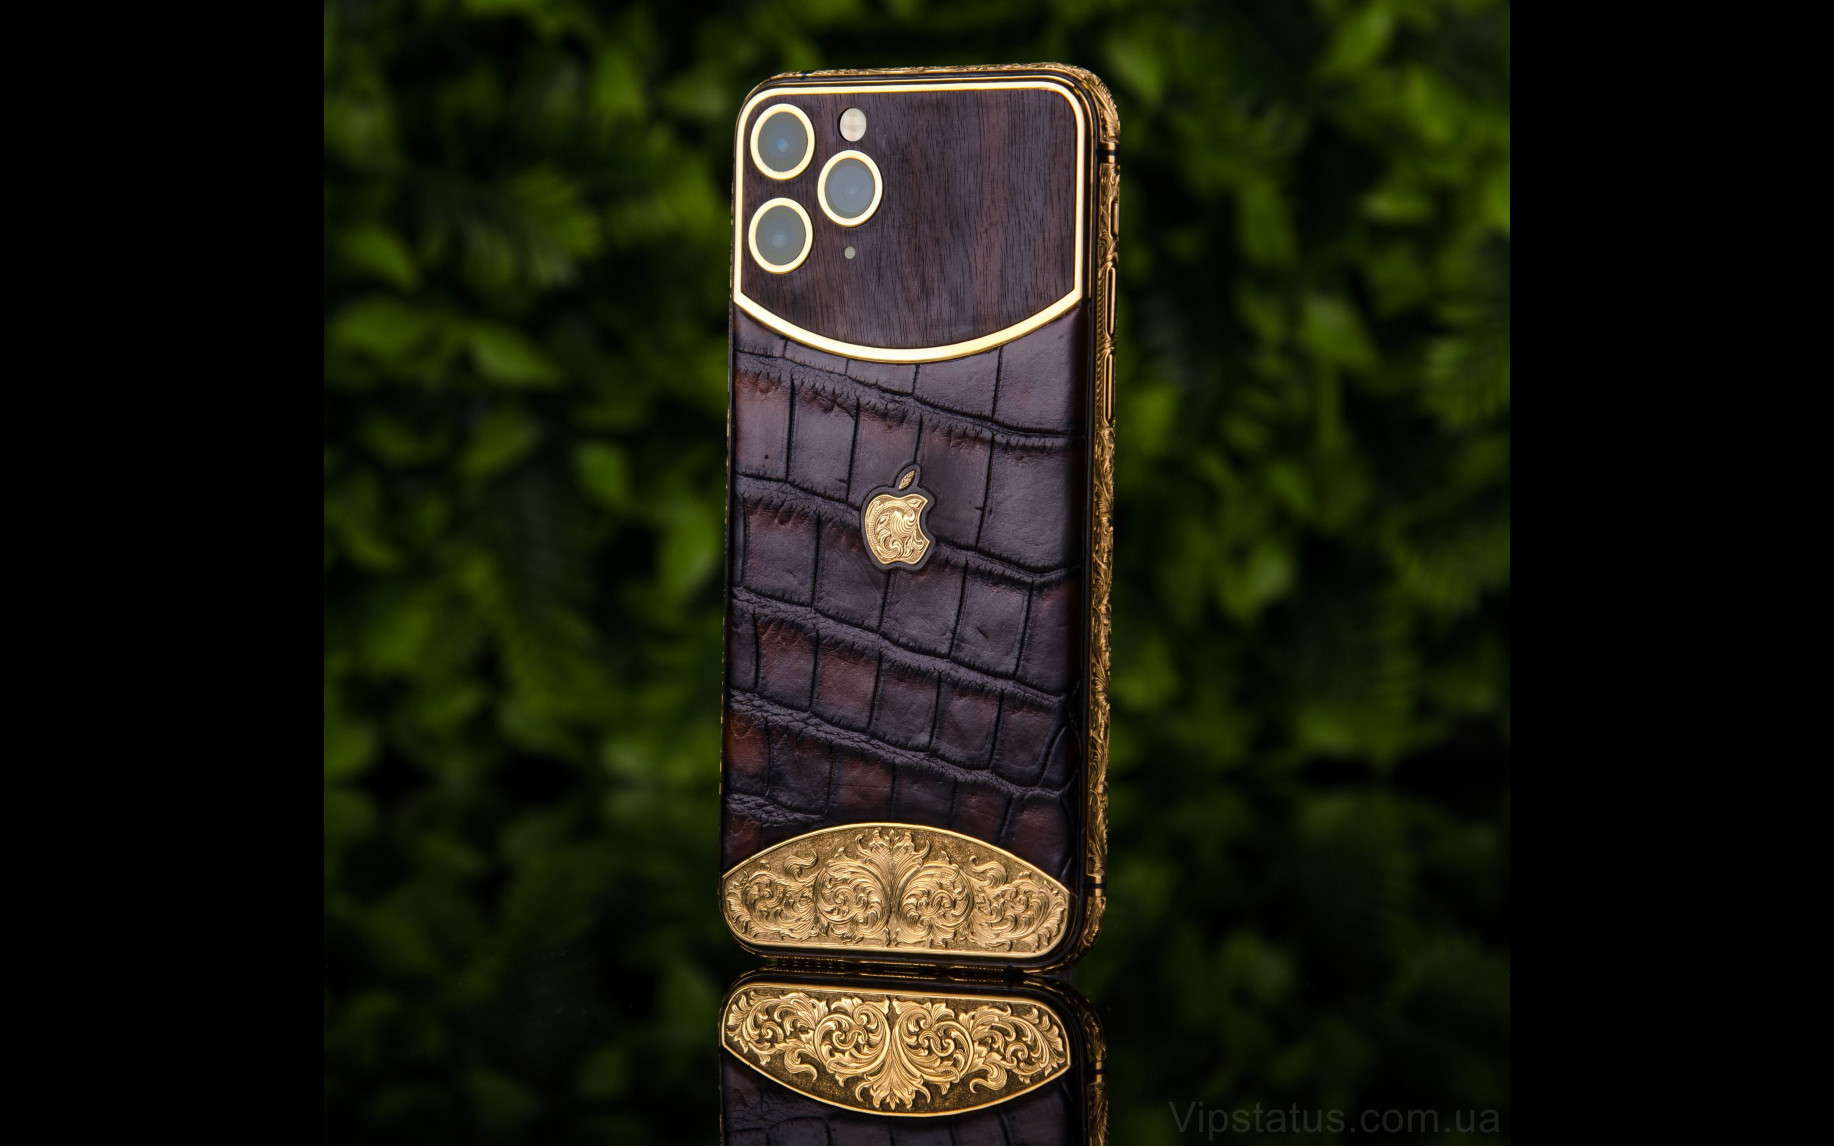 Elite Brown Edition IPHONE 11 PRO 512 GB Brown Edition IPHONE 11 PRO 512 GB image 7